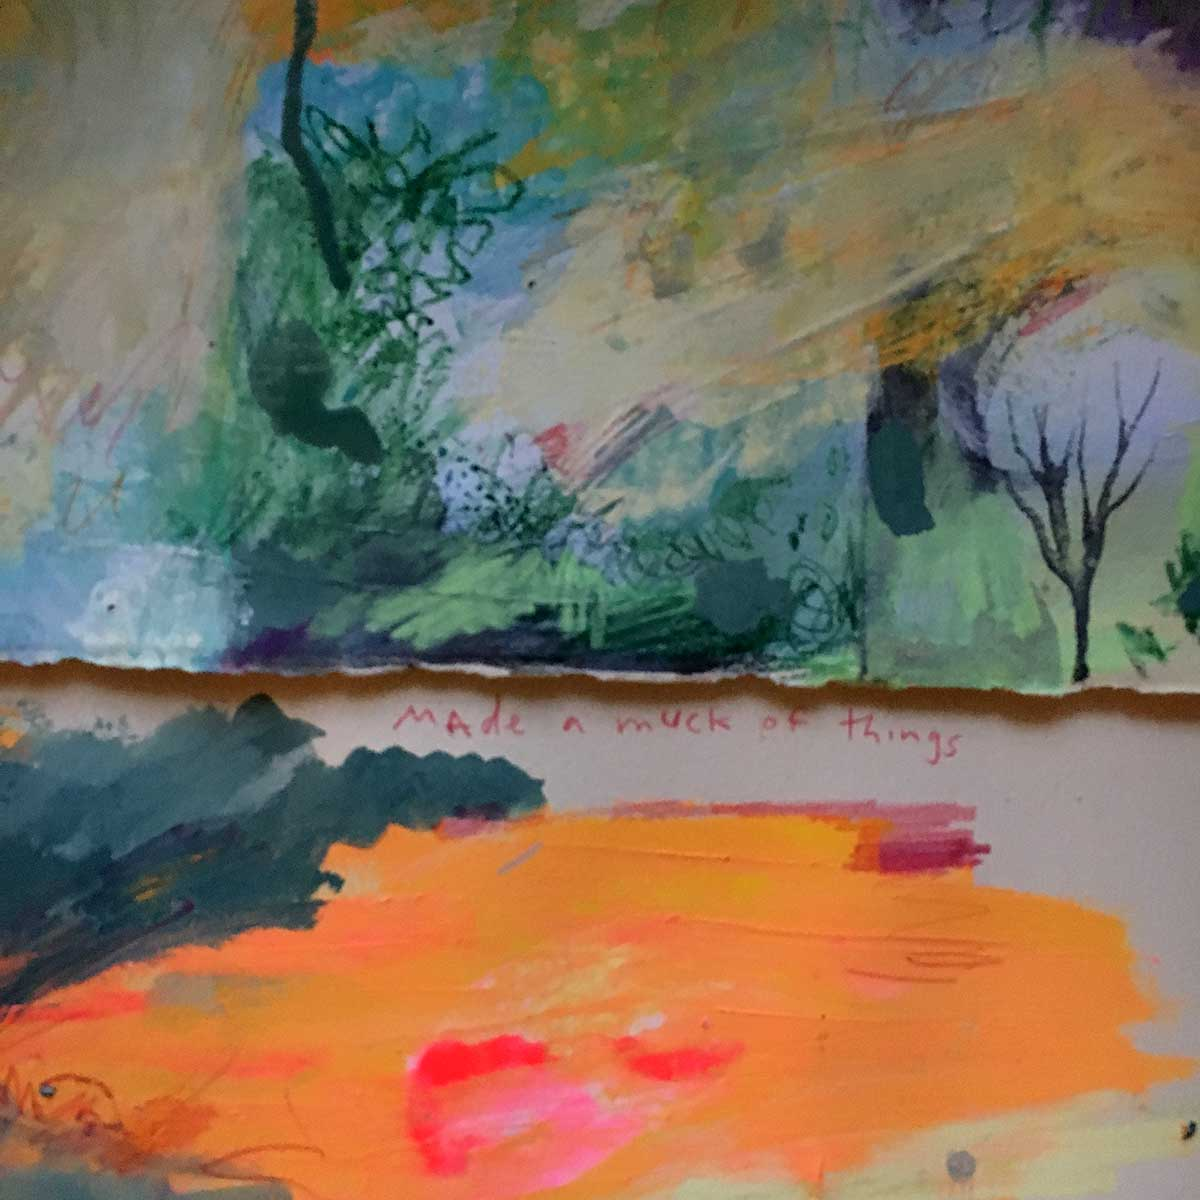 Using paper as a palette while working. Then I can use that palette paper as the base of a new painting.